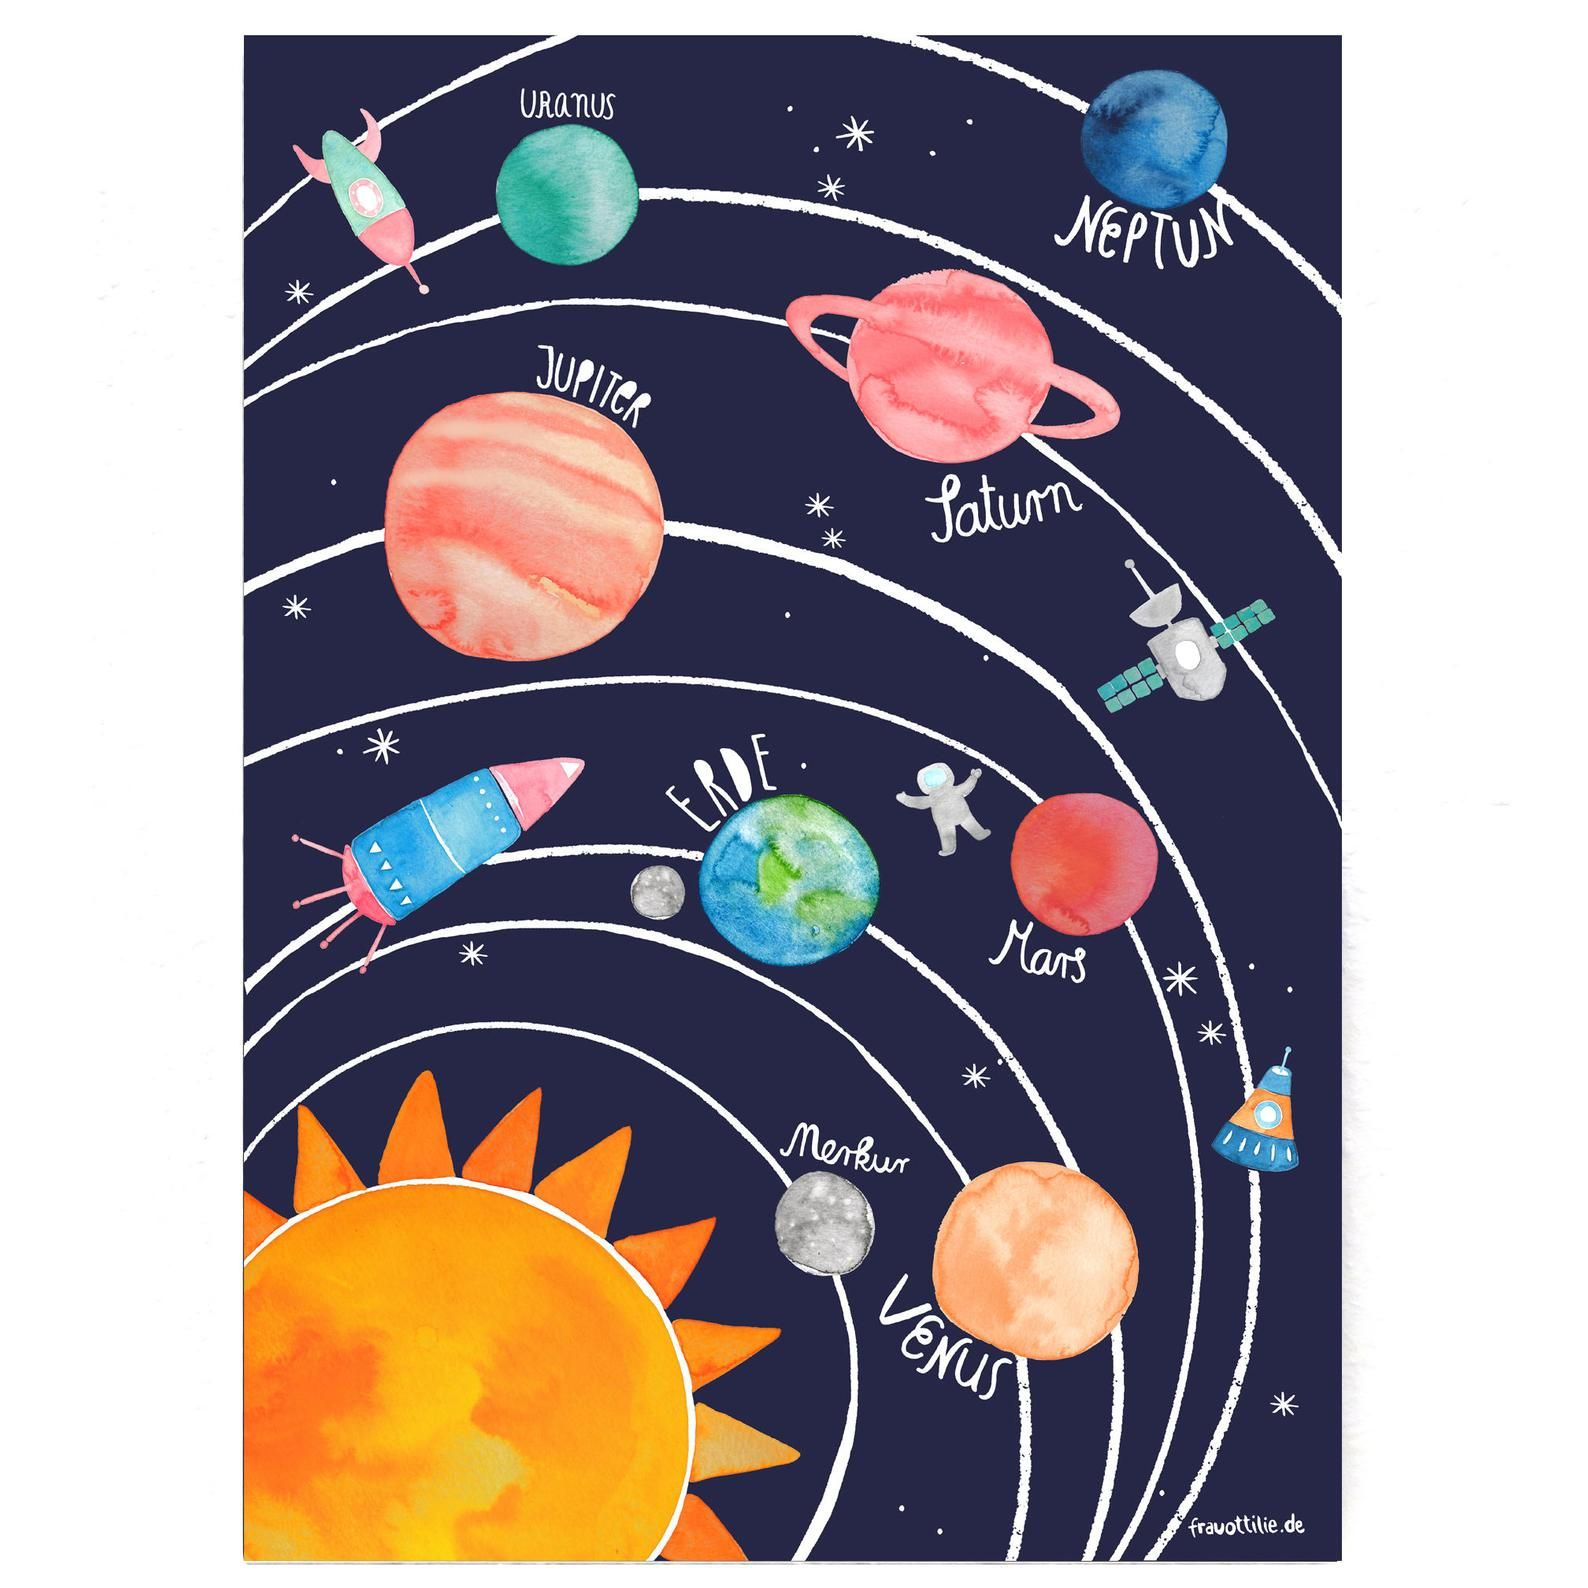 Solar System Poster For Children Planet Poster Planet Names In German English Version Is Available In Our Shop Too Solar System Poster Planet Poster Planet Drawing